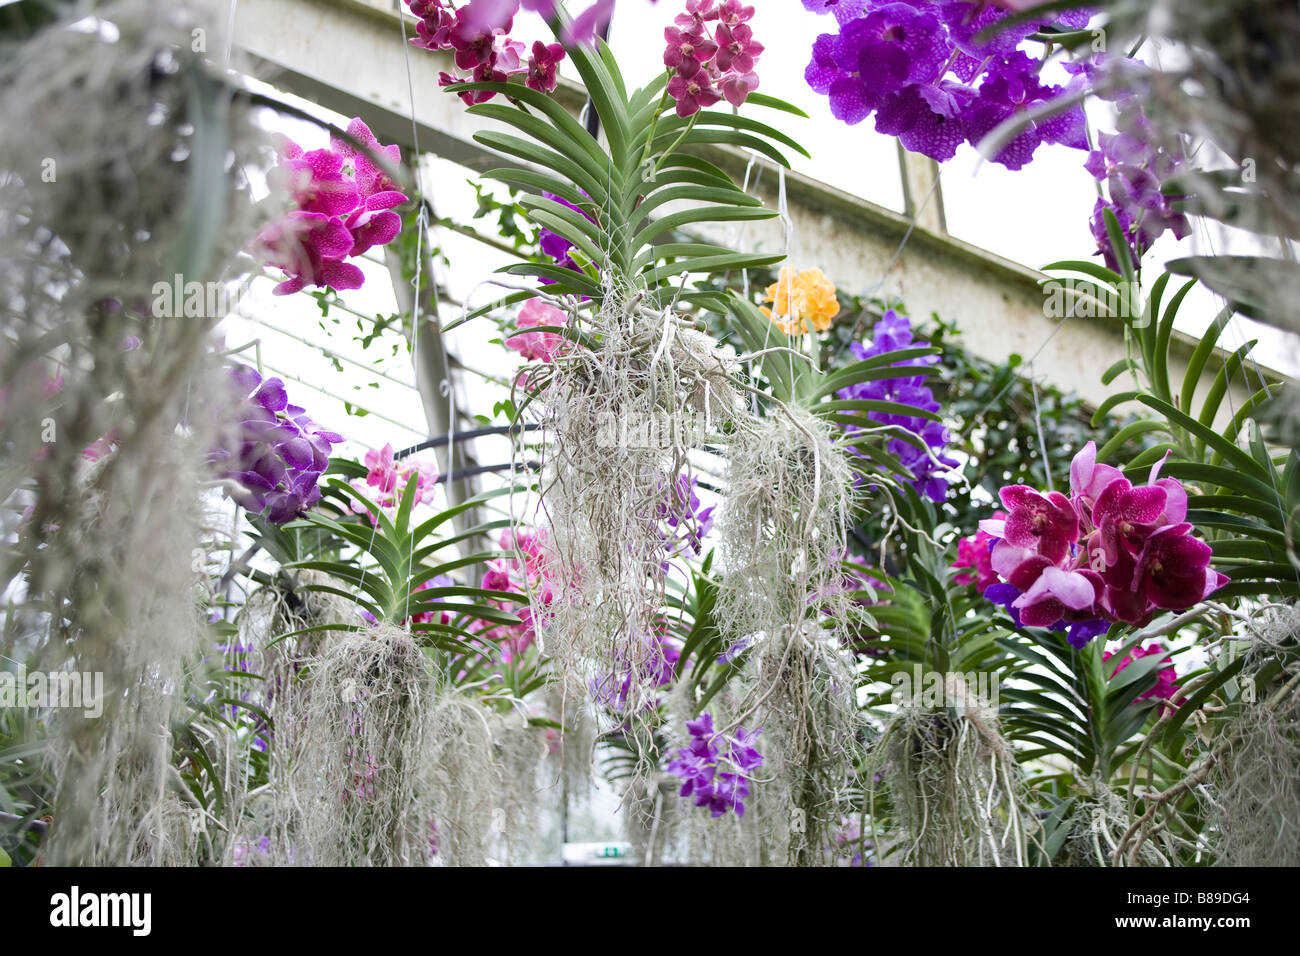 250 anniversary of Kew Gardens.Inside the Princess of Wales Conservatory exhibiting tropical plants and orchids - Stock Image